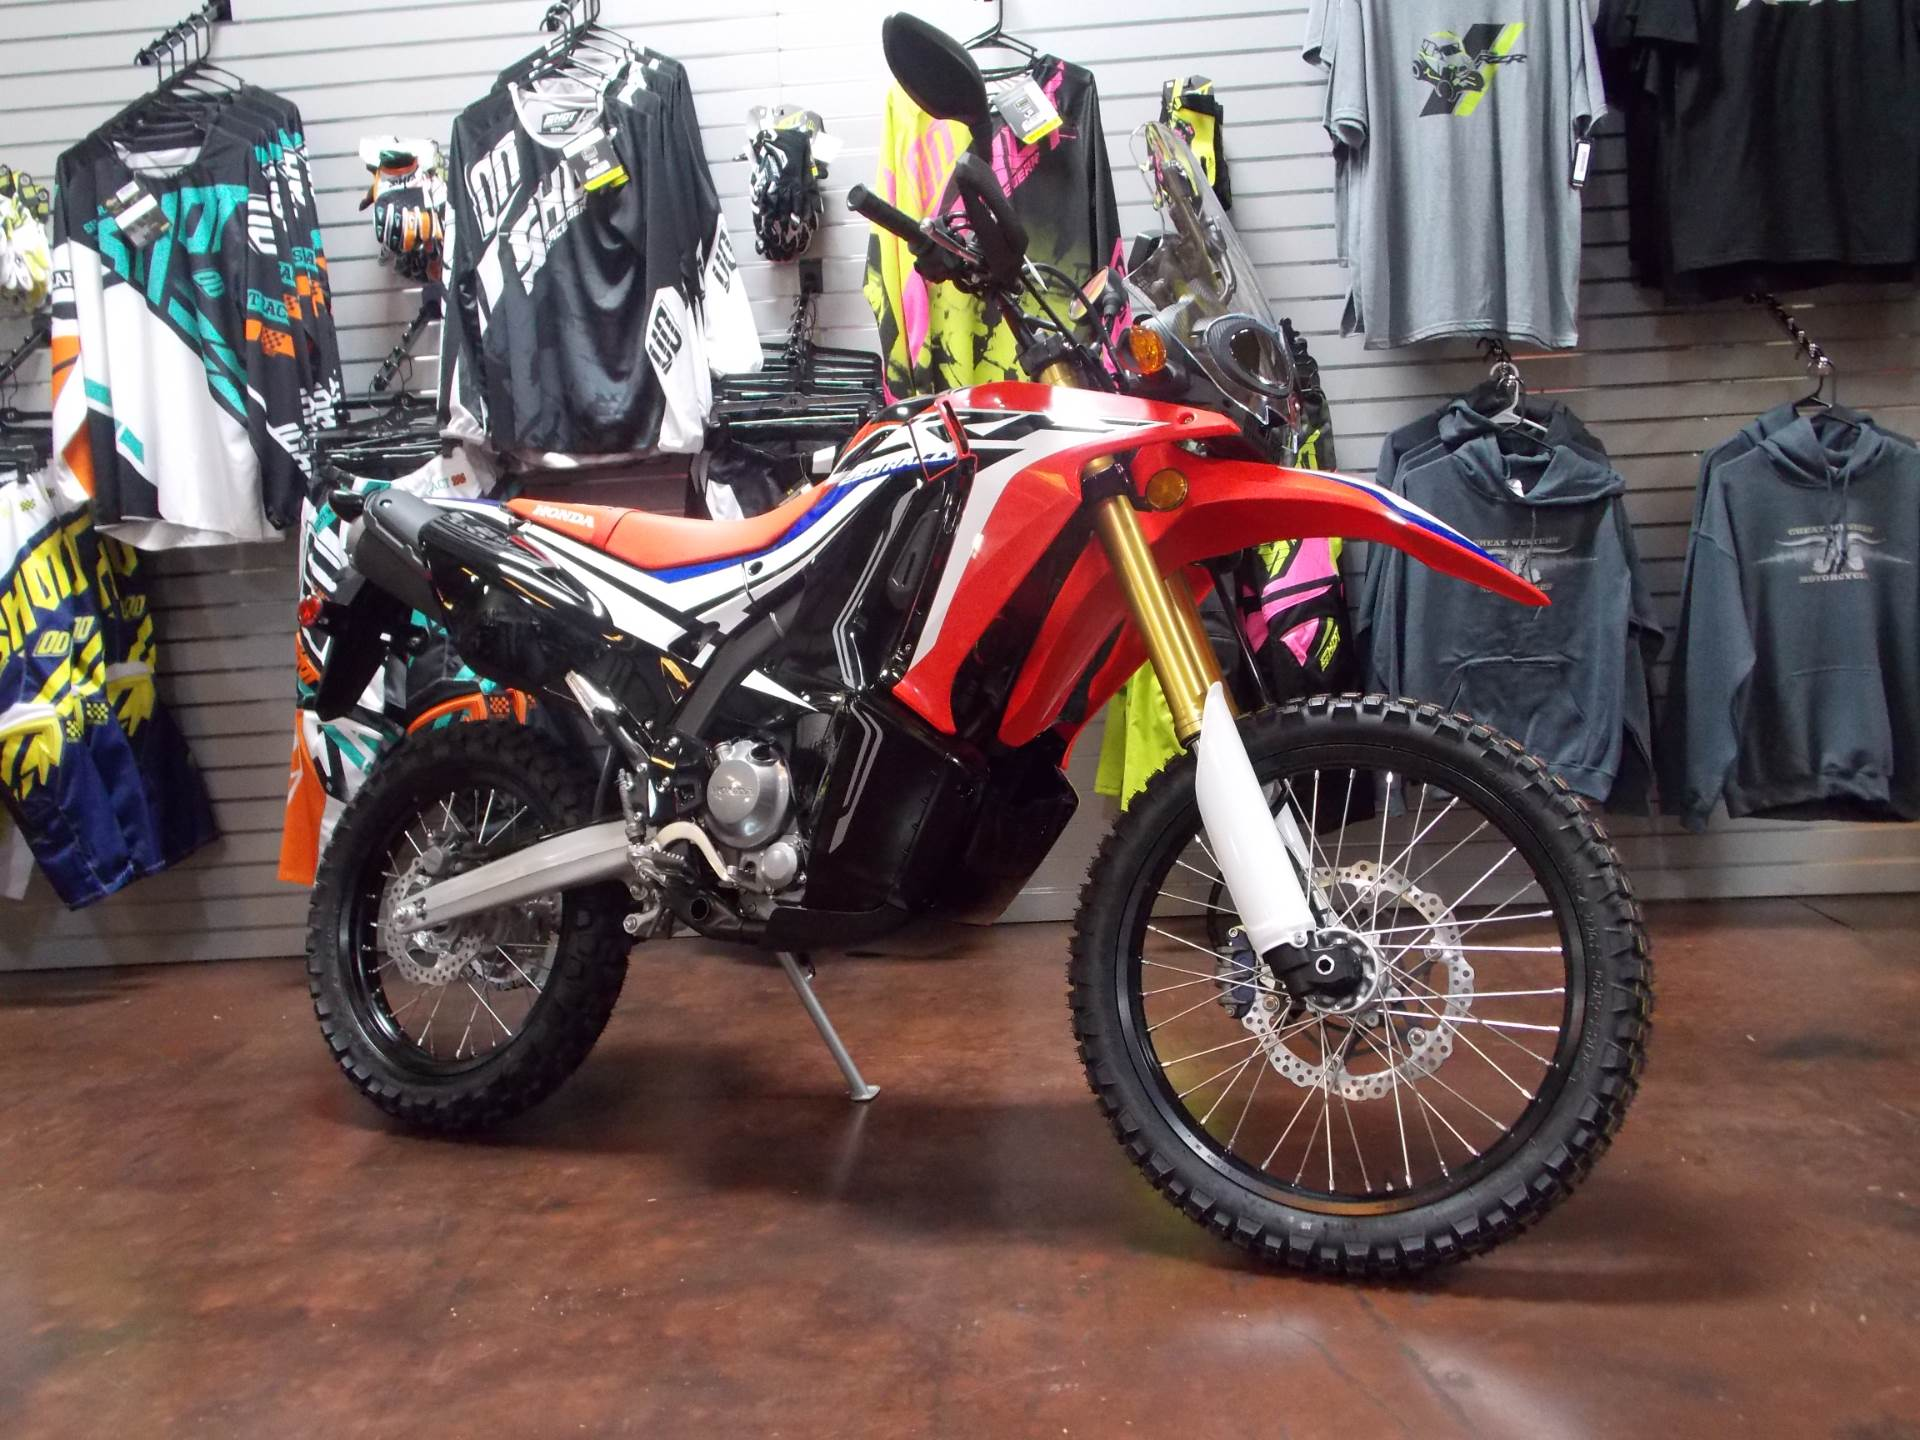 new 2017 honda crf250l rally motorcycles in statesville, nc